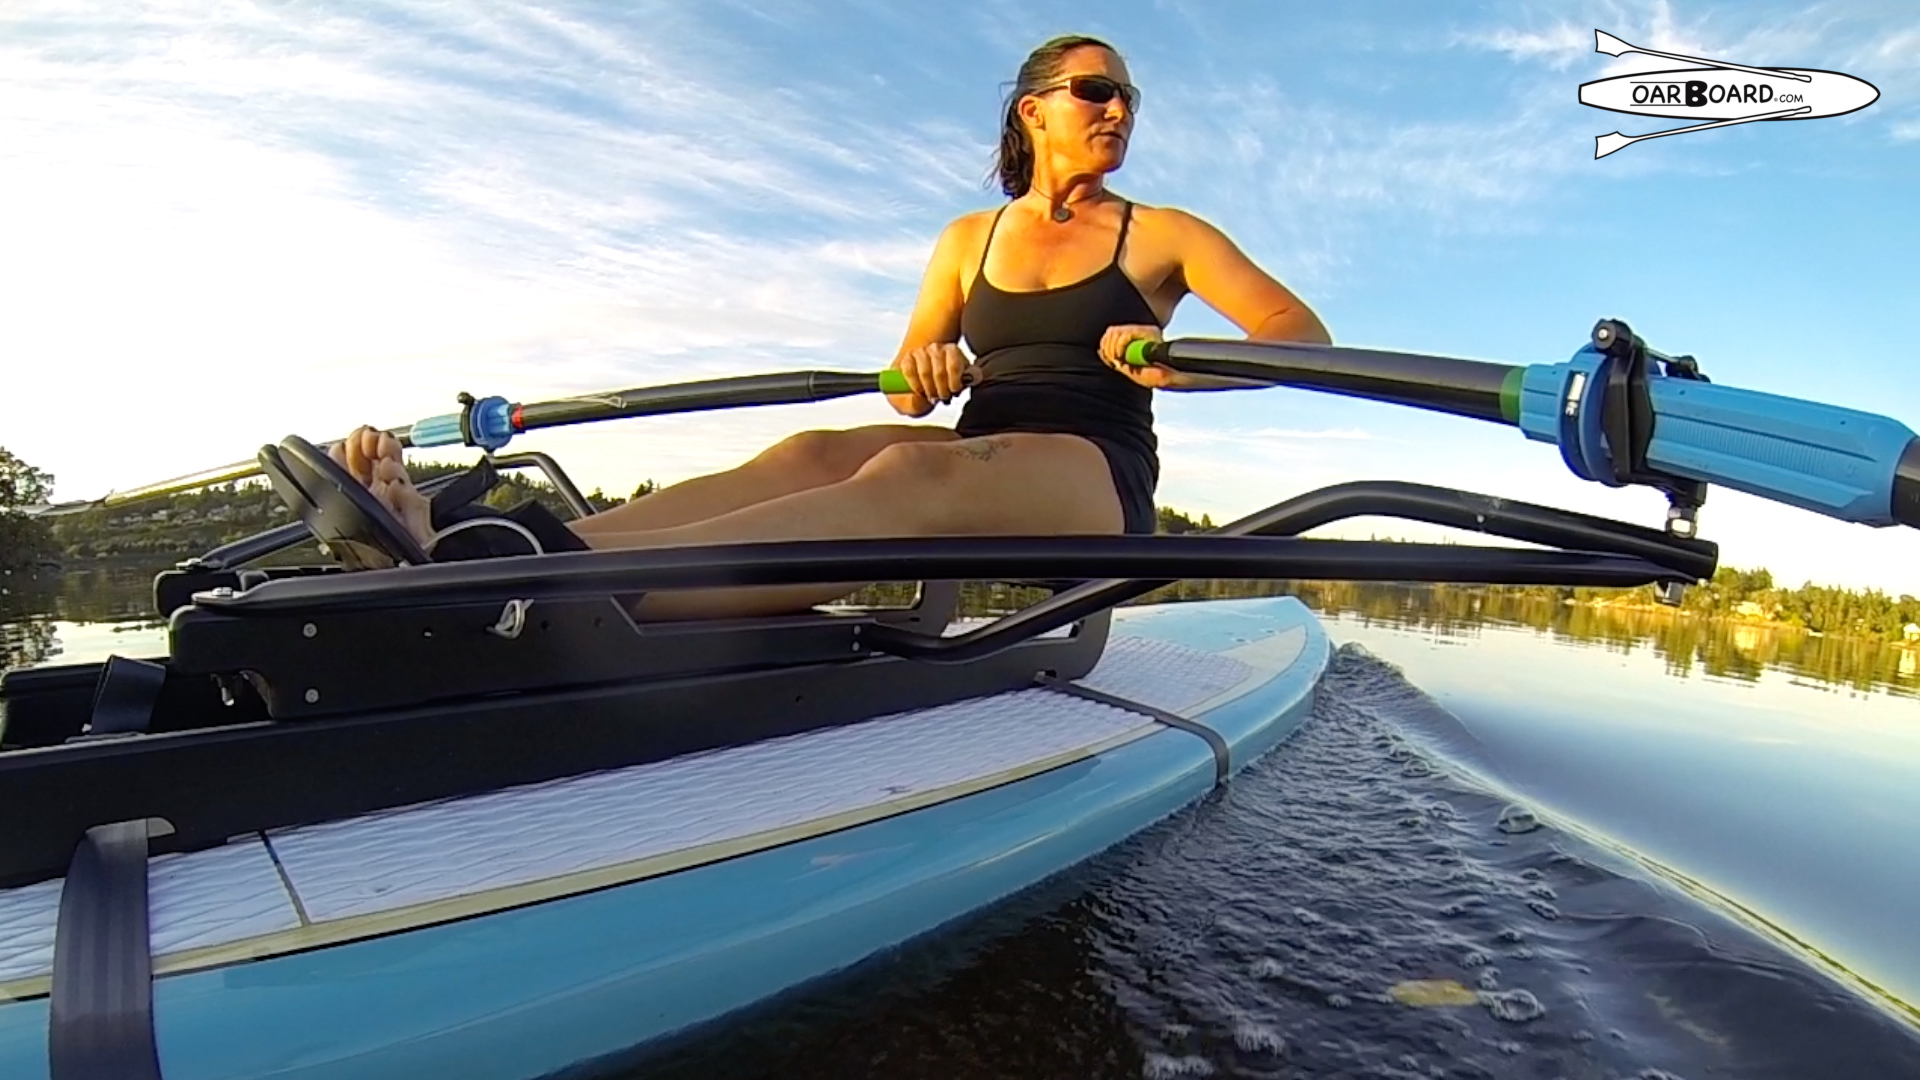 Oar Board® Rowing Fitness, Fun and Adventure